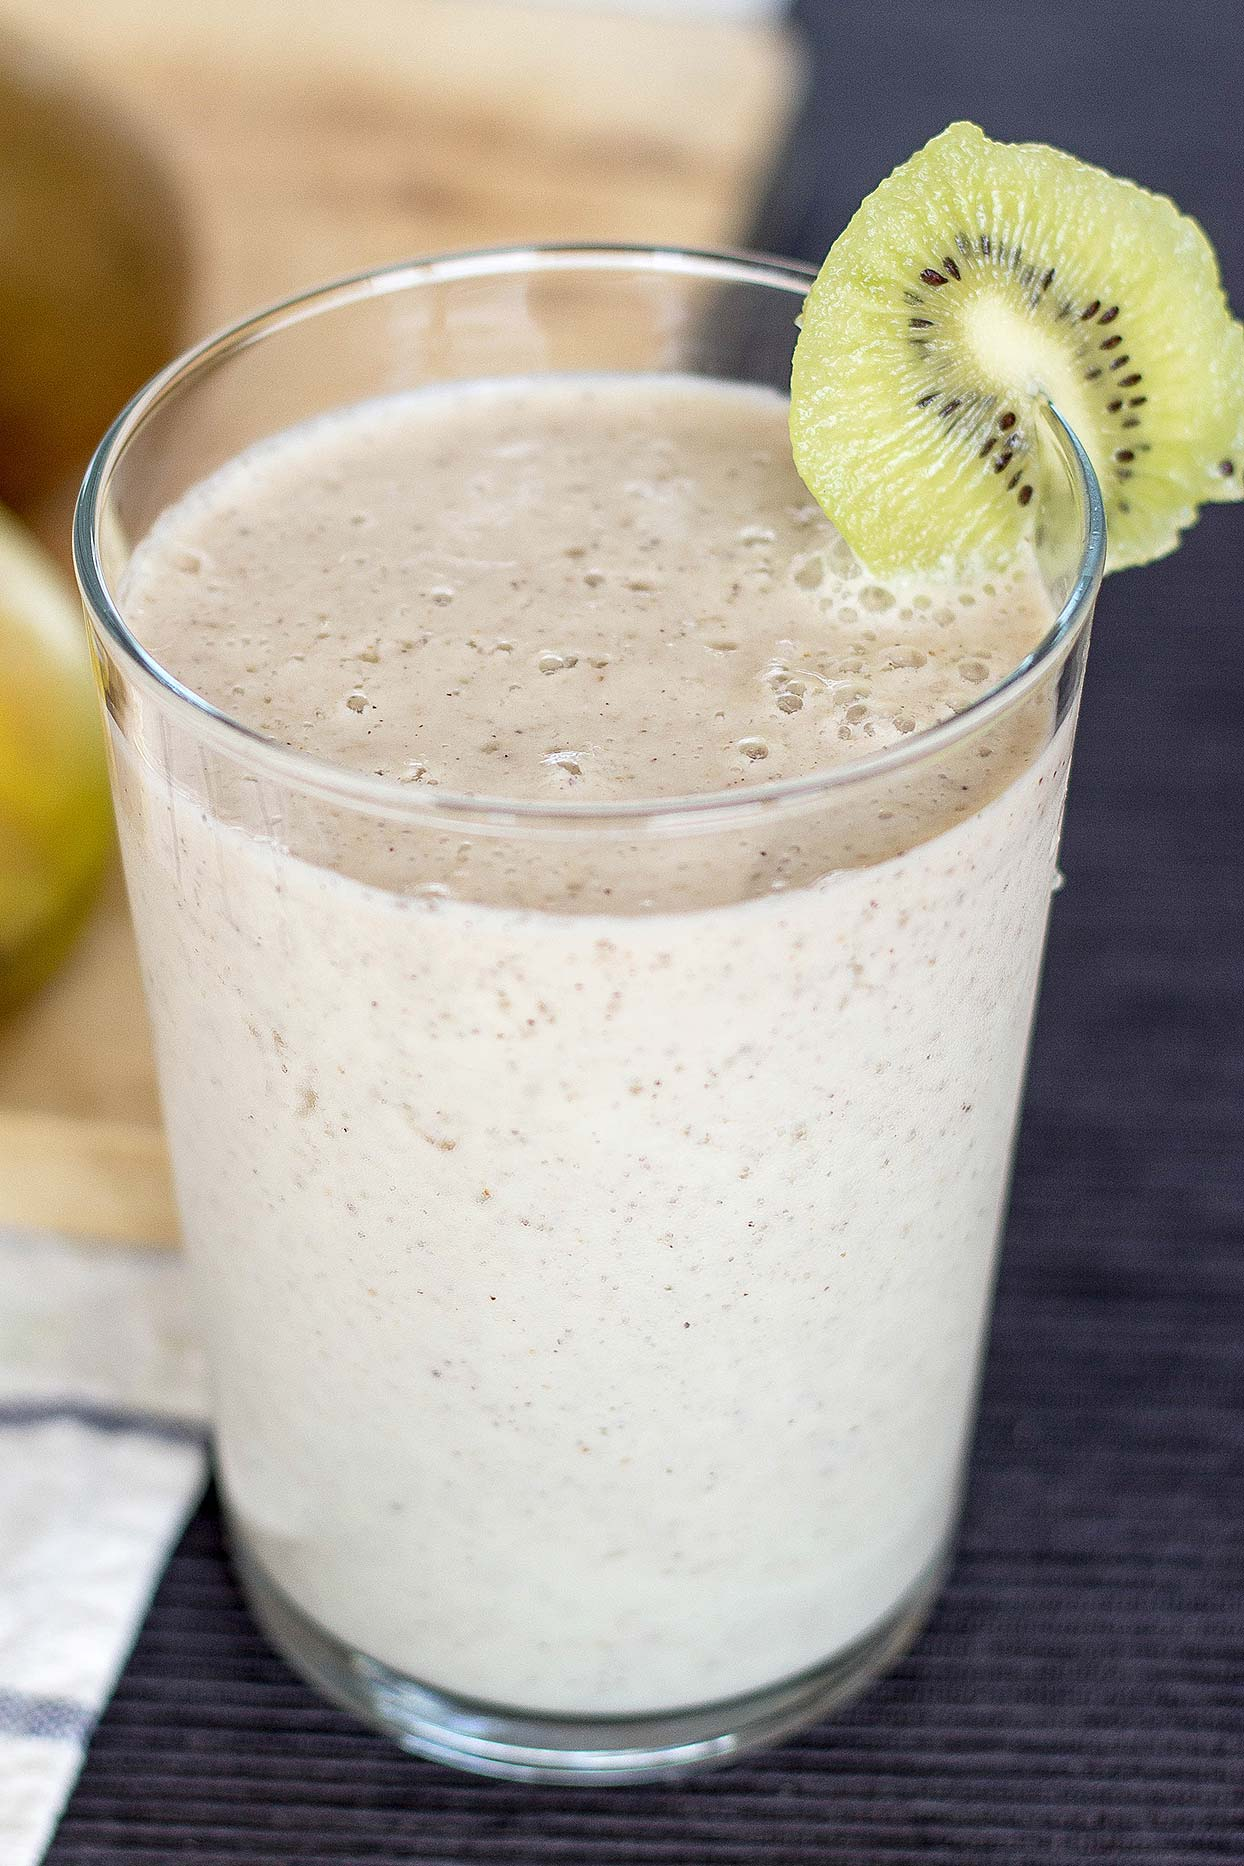 Spicy Kiwi Banana Smoothie. High in vitamin C, fiber and potassium. Delicious and tasty.| hurrythefoodup.com